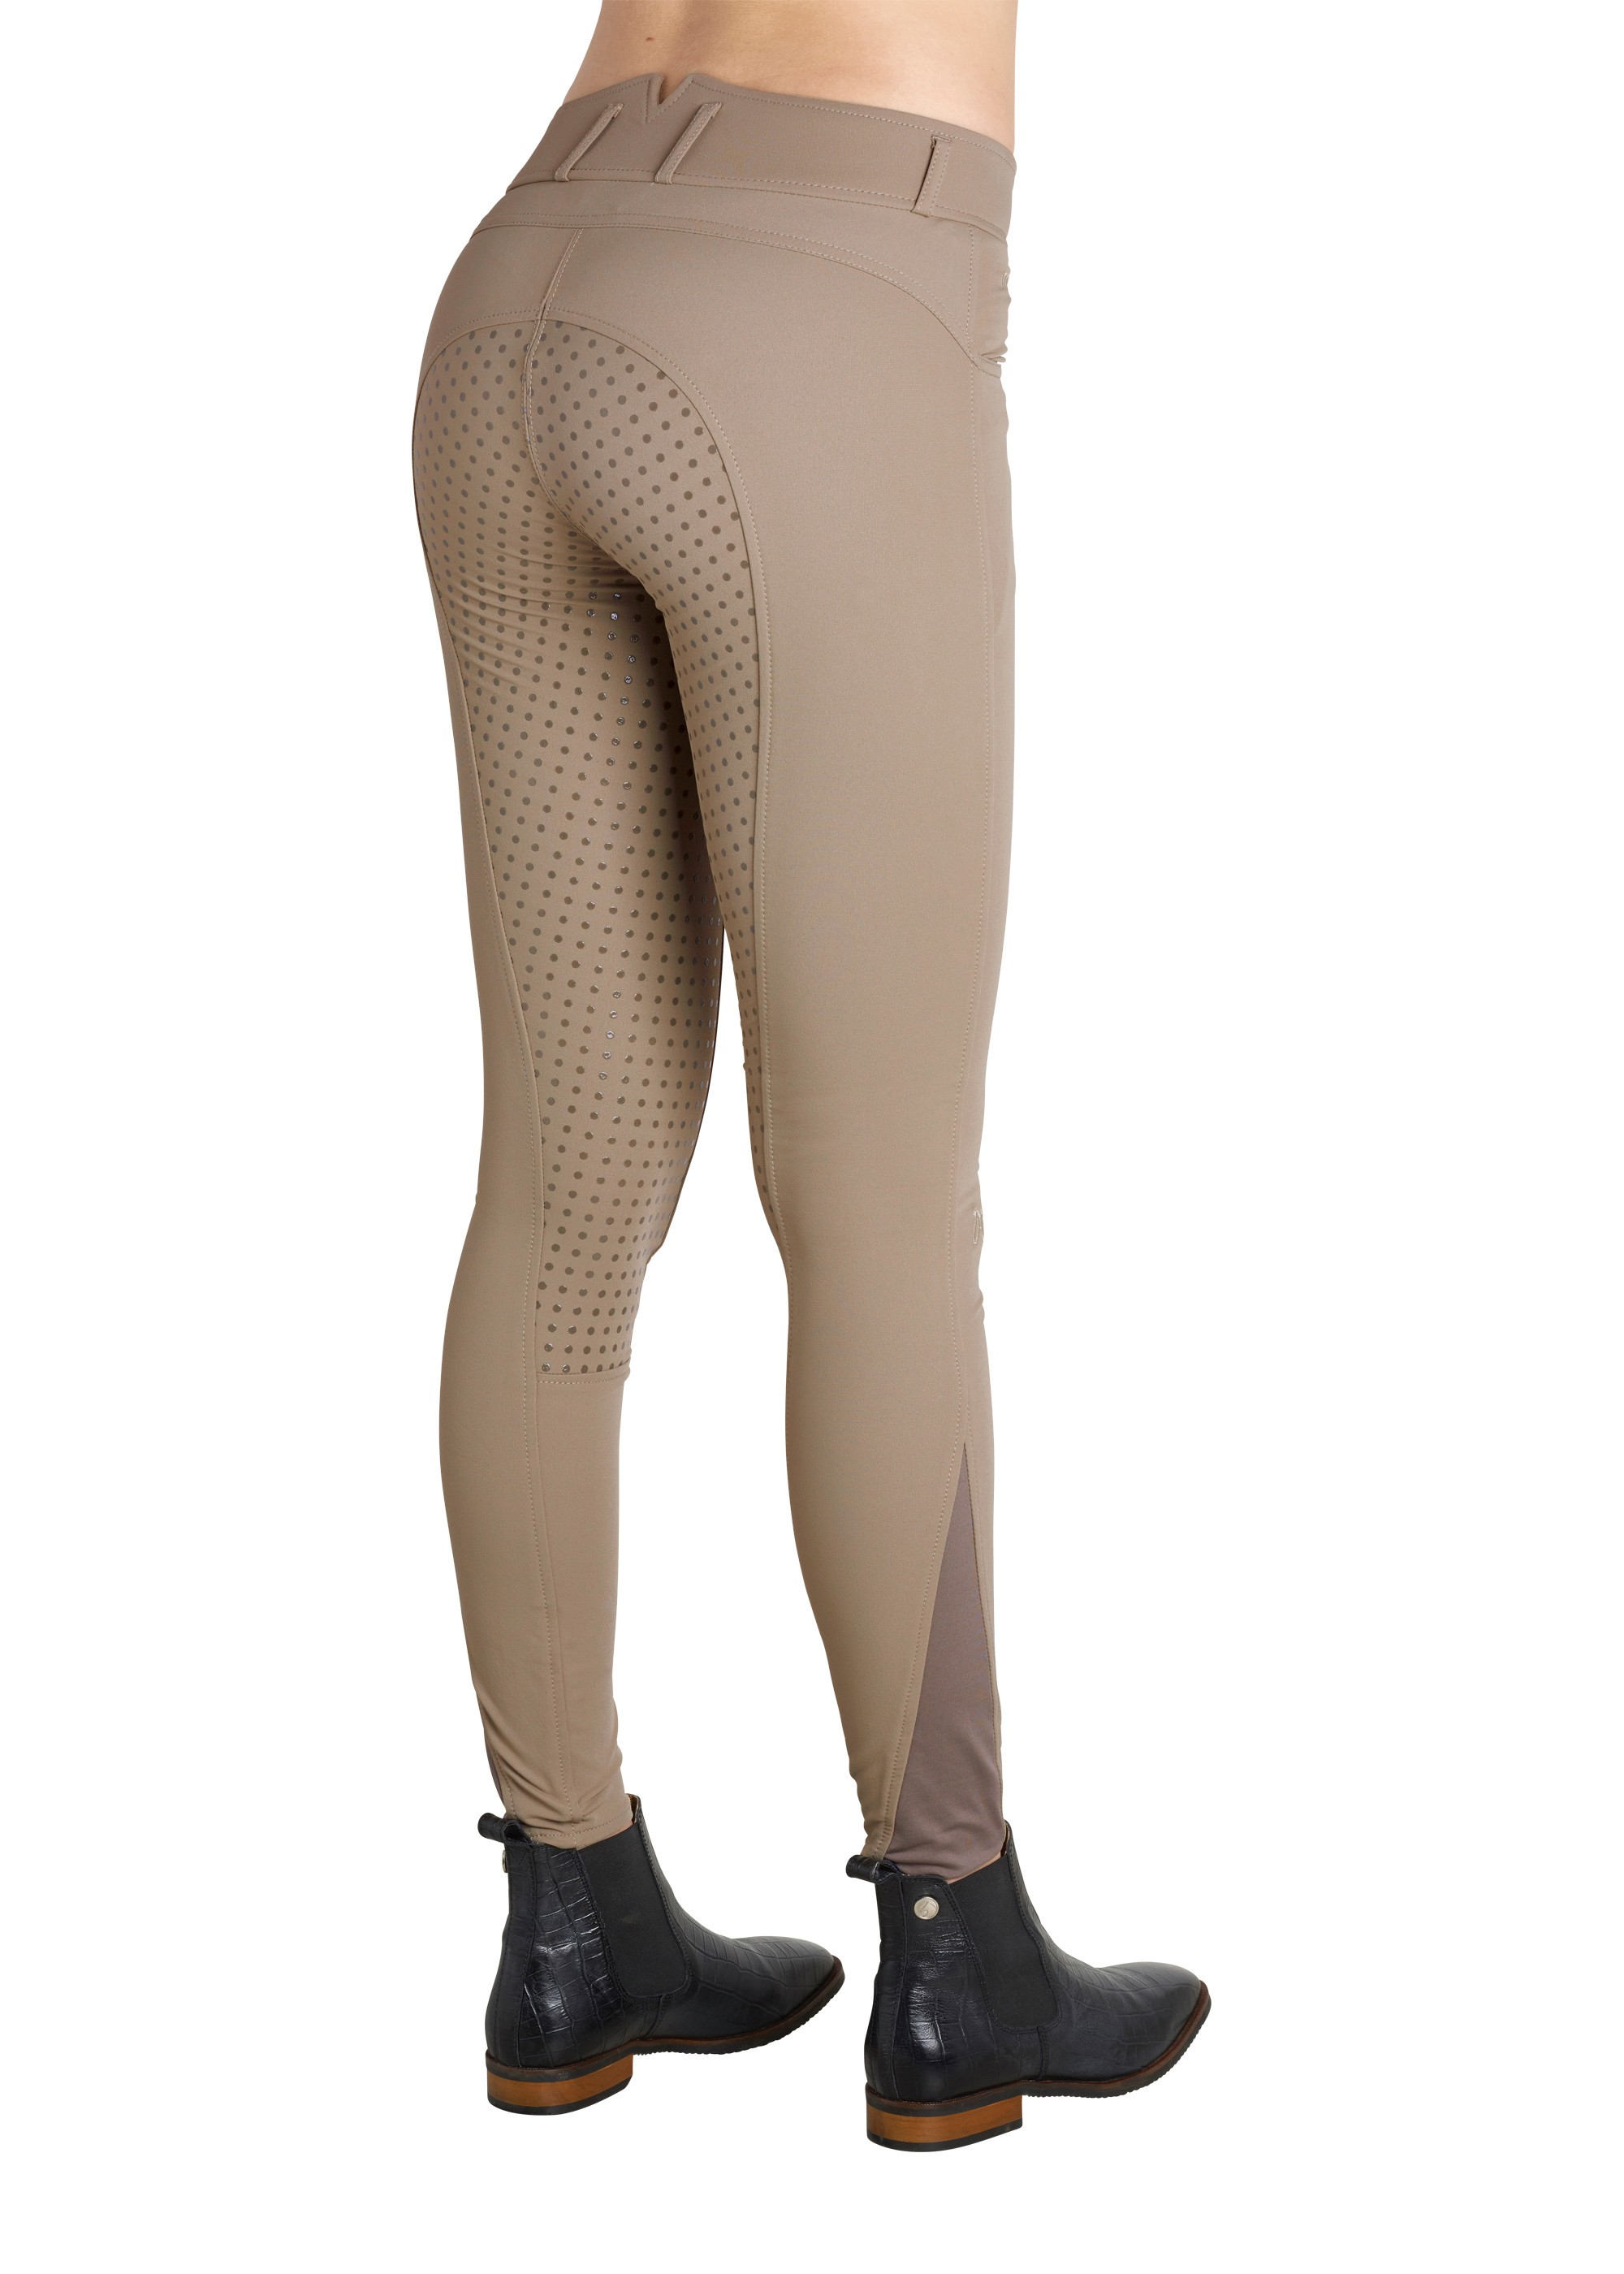 Montar ESS High Waist Full Seat Womens Breeches  - Thomas Irving's equestrian and accessories store  Montar ESS High Waist Full Silicone Seat Breeches